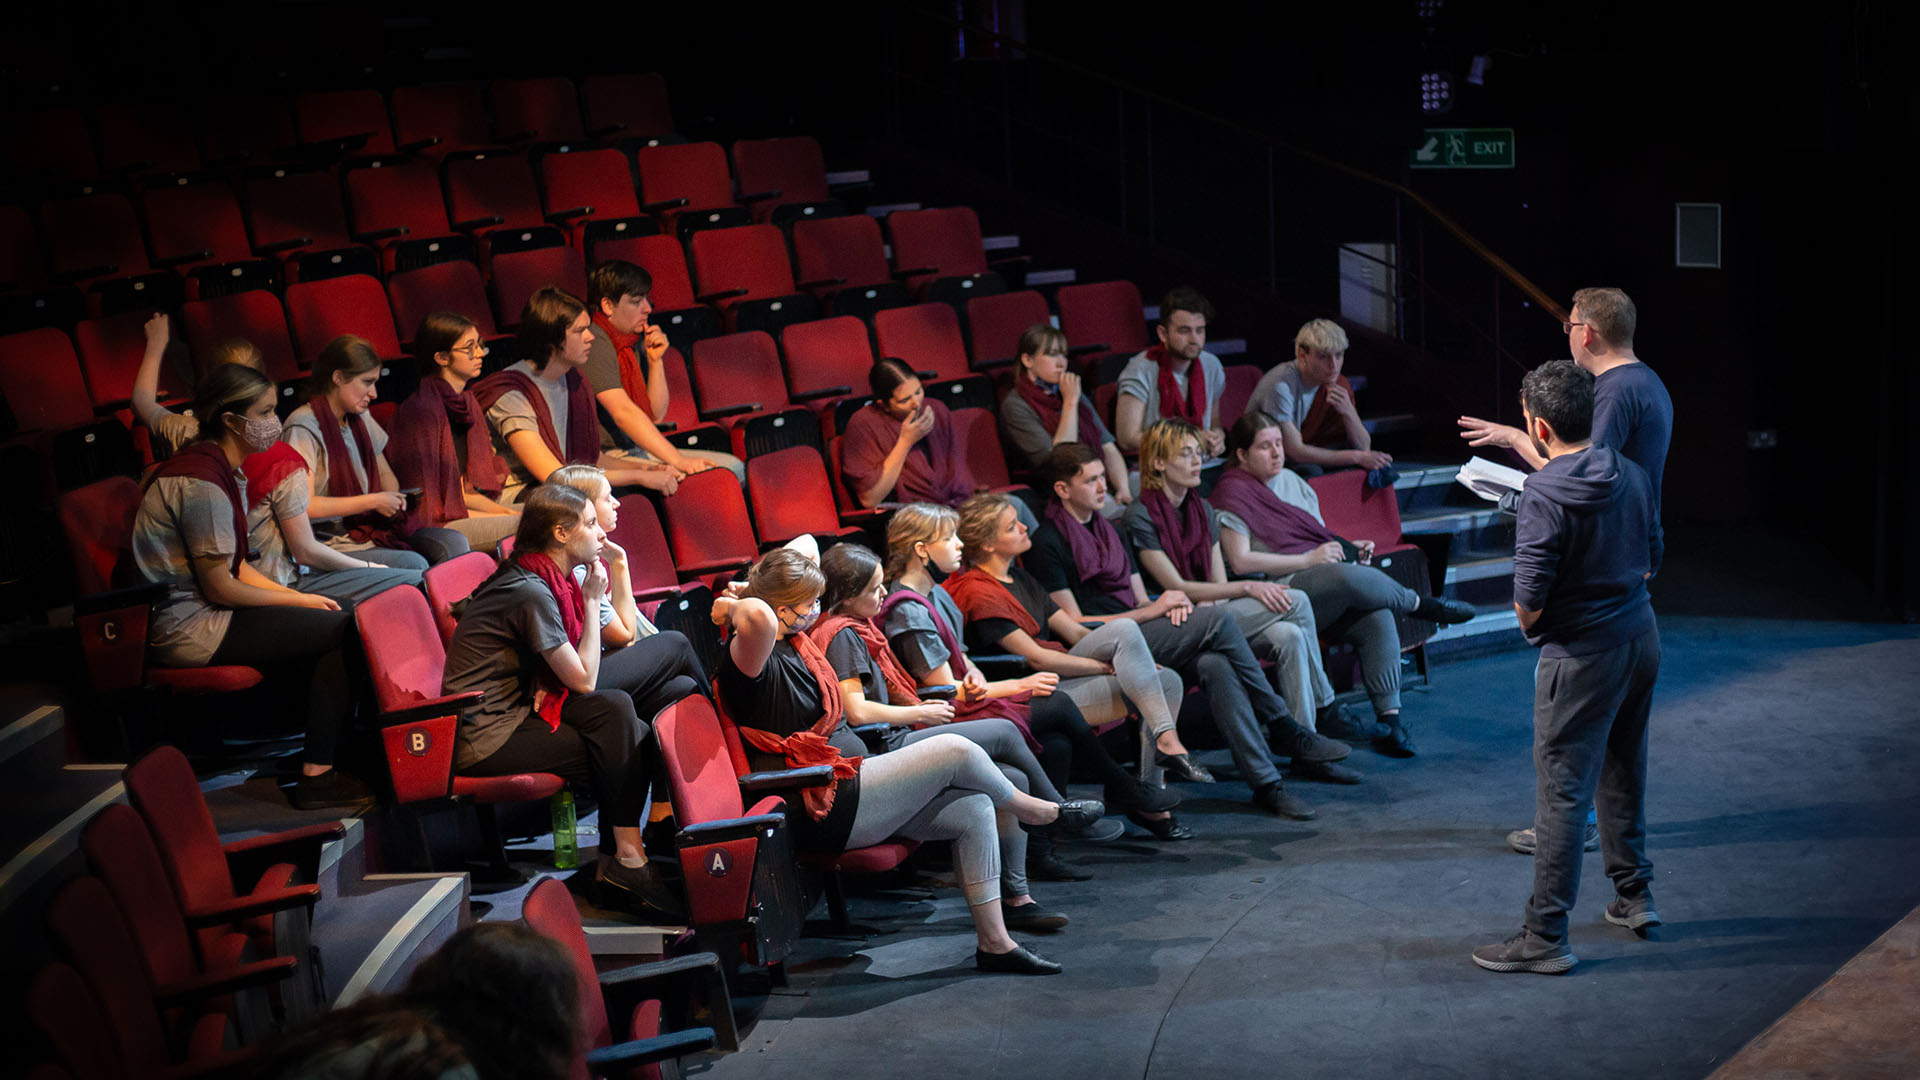 Antigone Rehearsals - the student cast is seated in the auditorium, listening to Director Daniel Buckroyd and Associate Director Yusuf Niazi